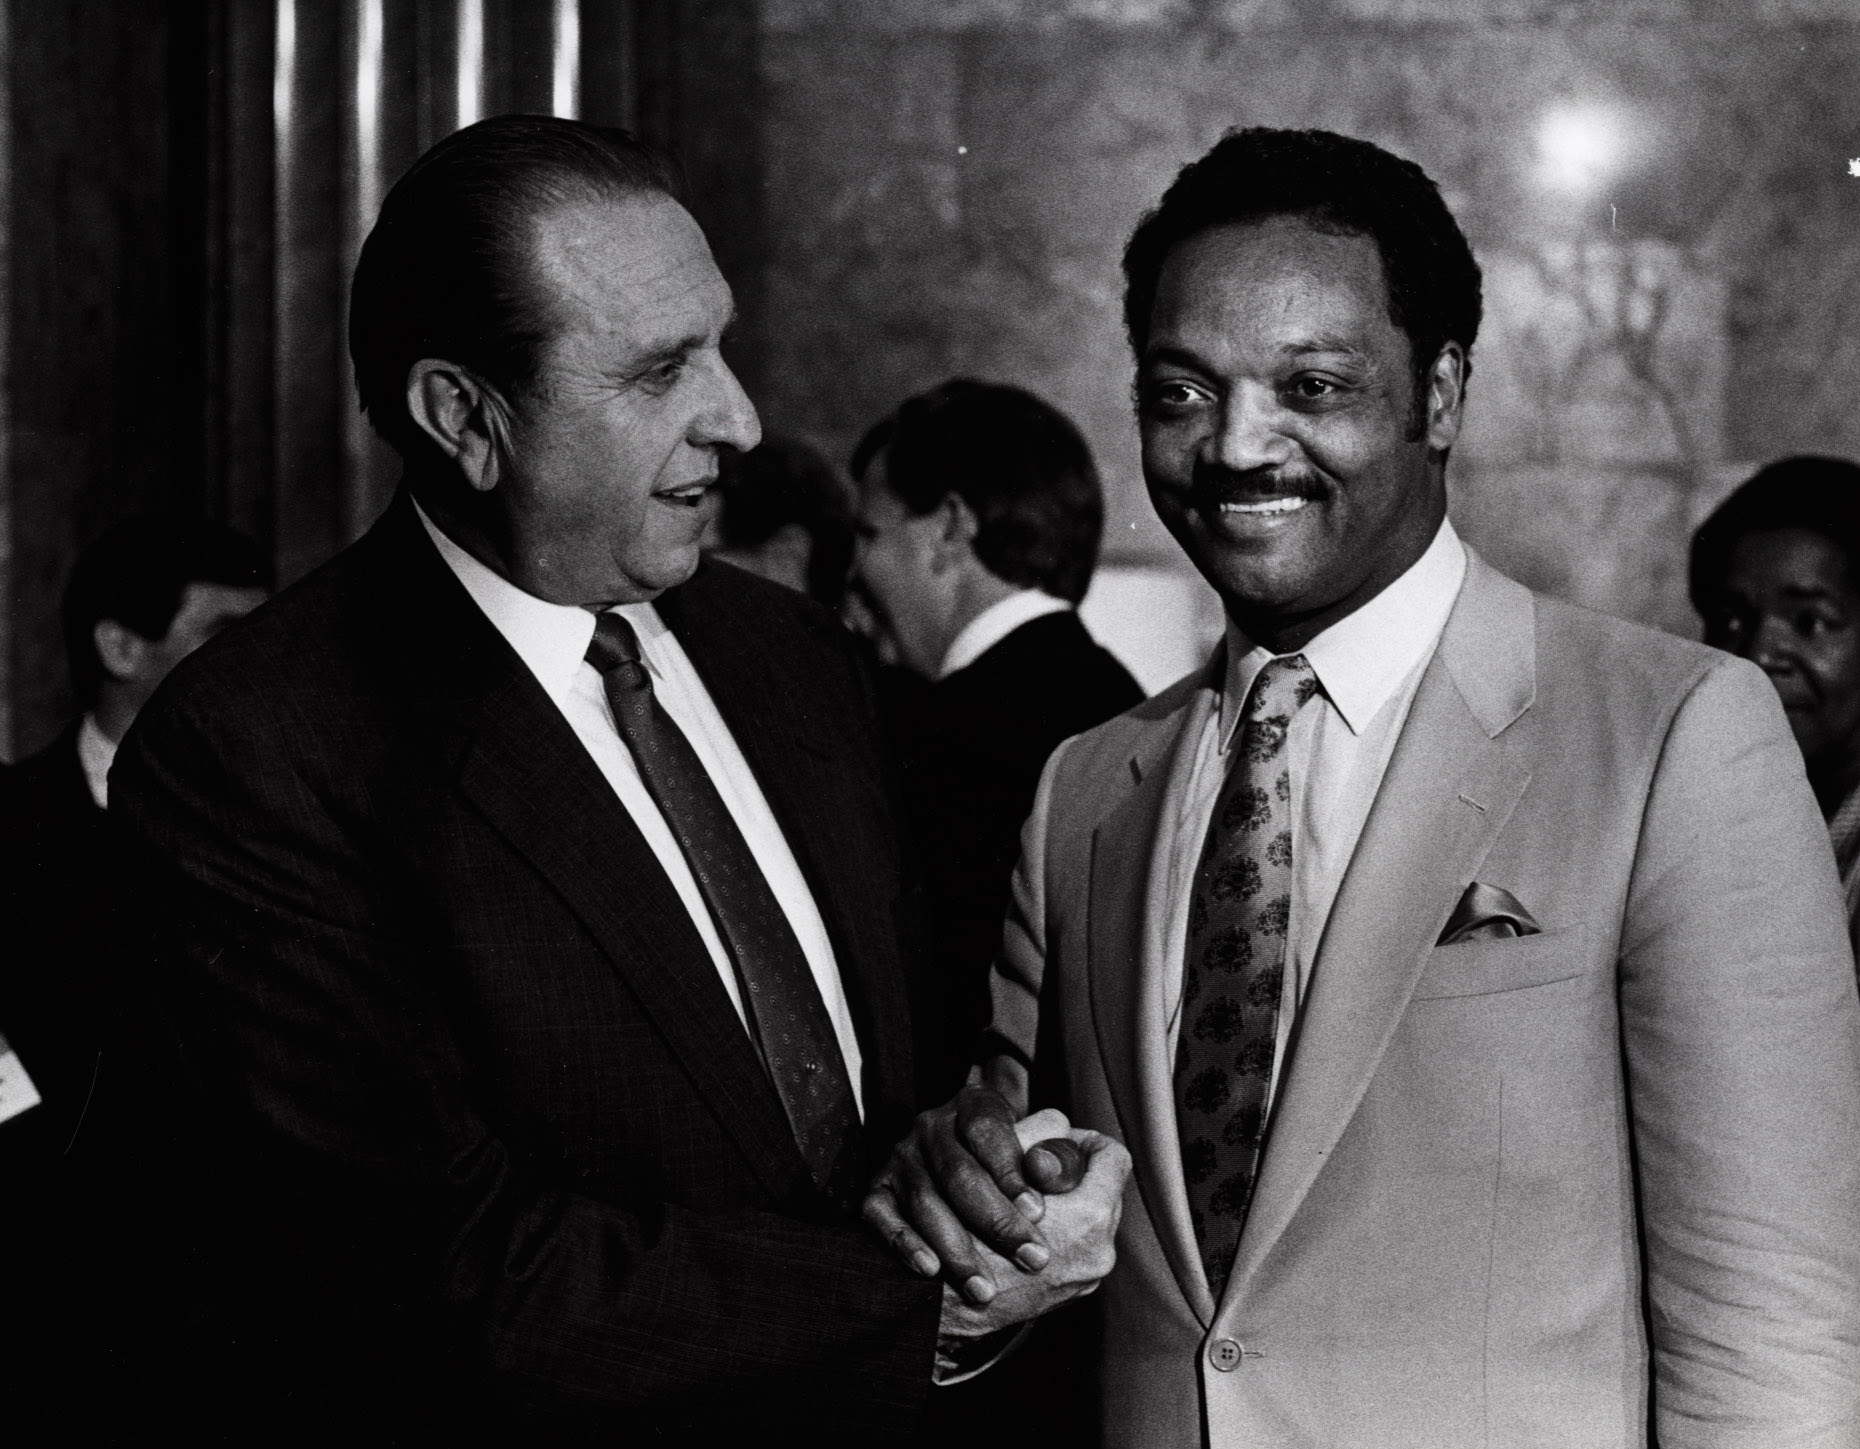 (Tribune file photo) President Thomas S. Monson and the Rev. Jesse Jackson in 1988.